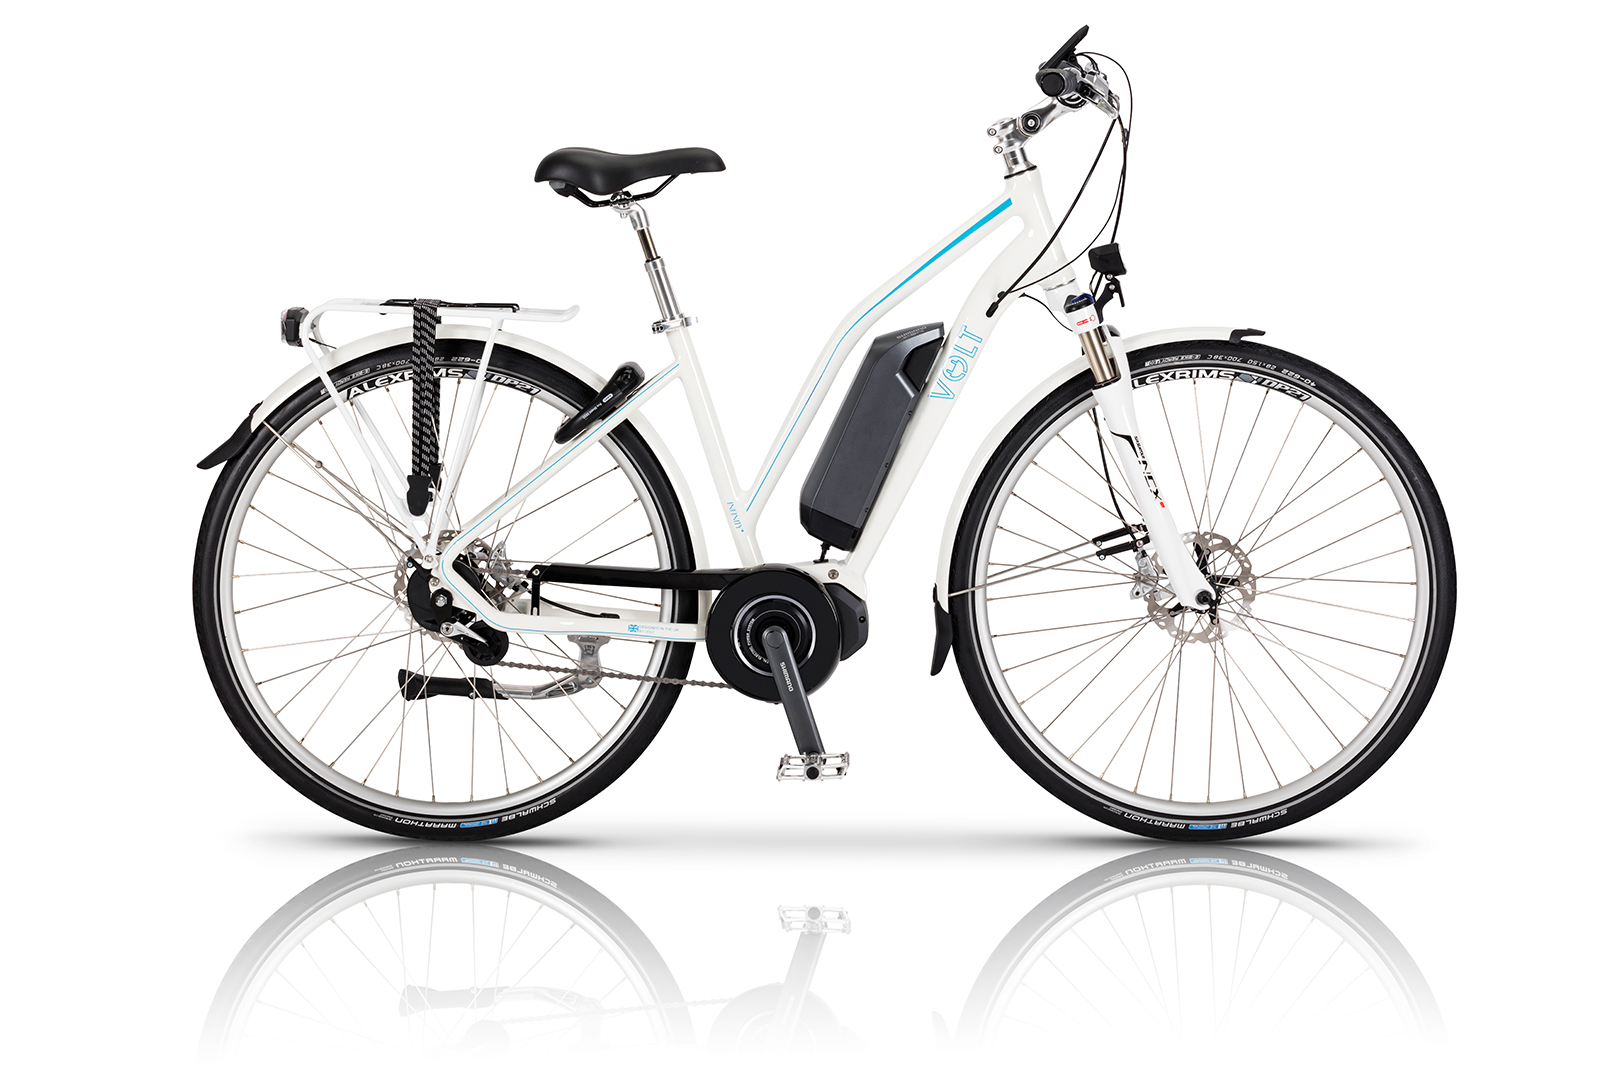 Infinity LS 2019 Model Shimano STEPS e-bike from Volt